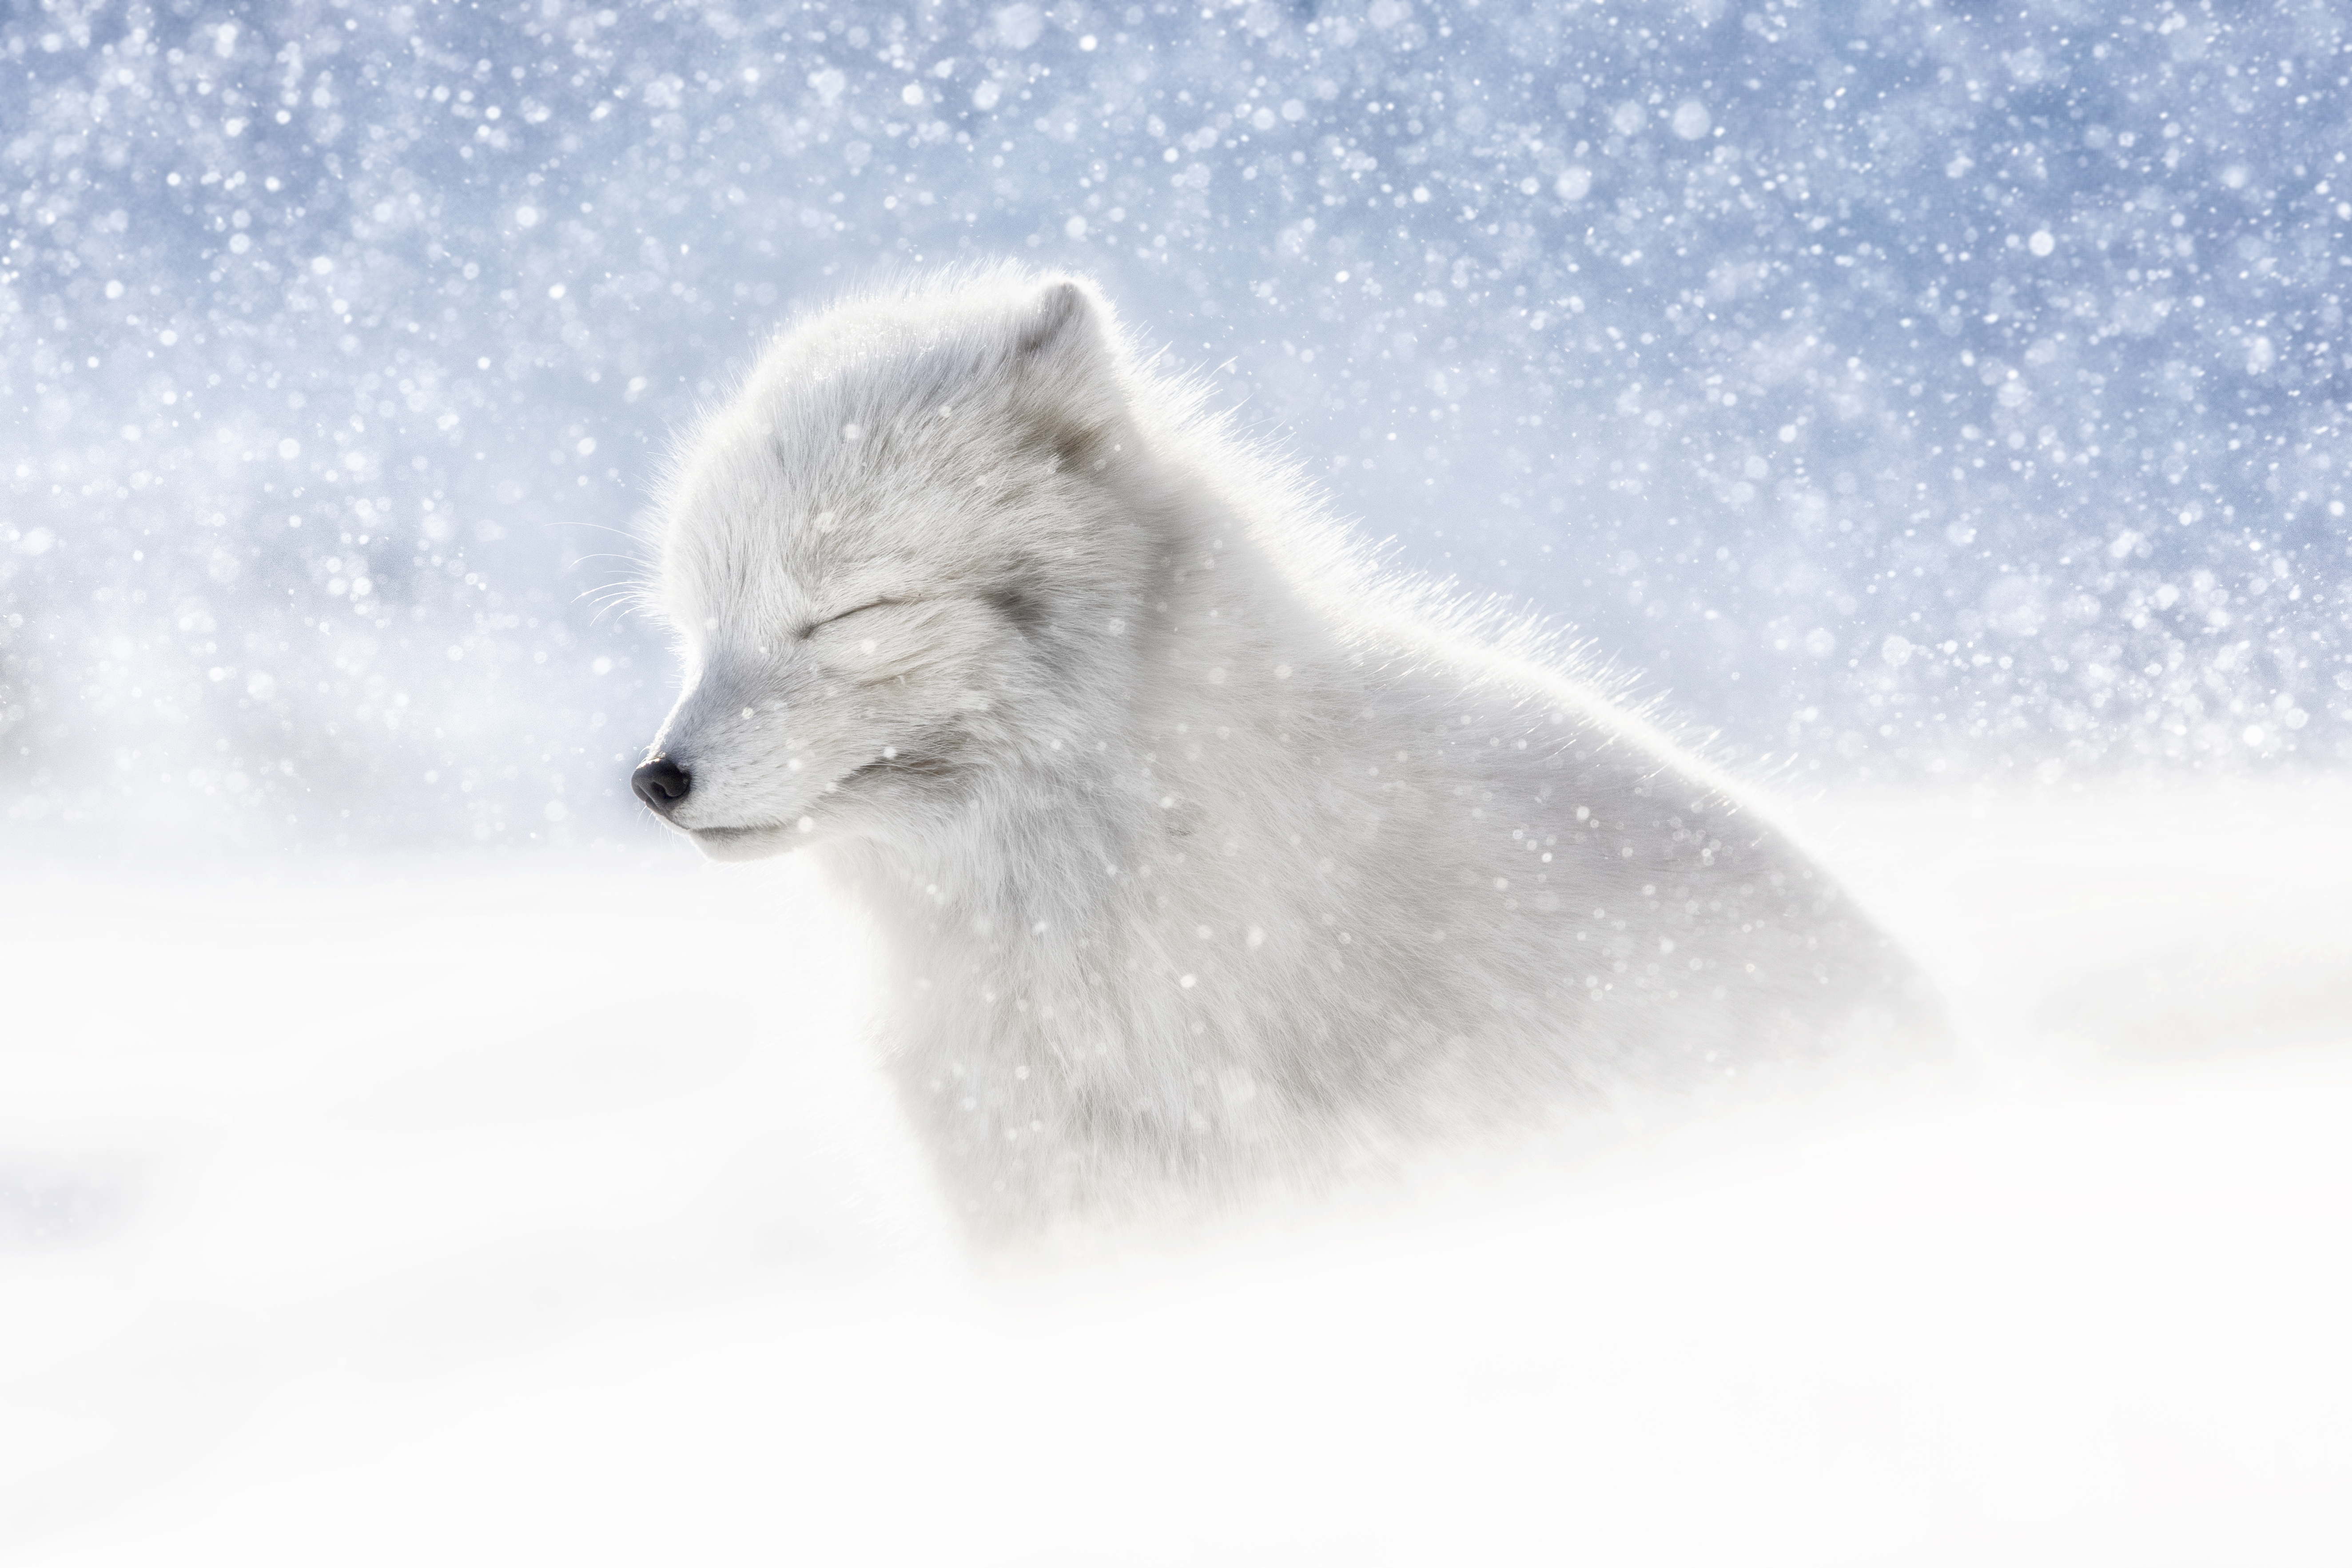 Arctic Fox in snow, Northern Svalbard, Norway (Marco Gaiotti)